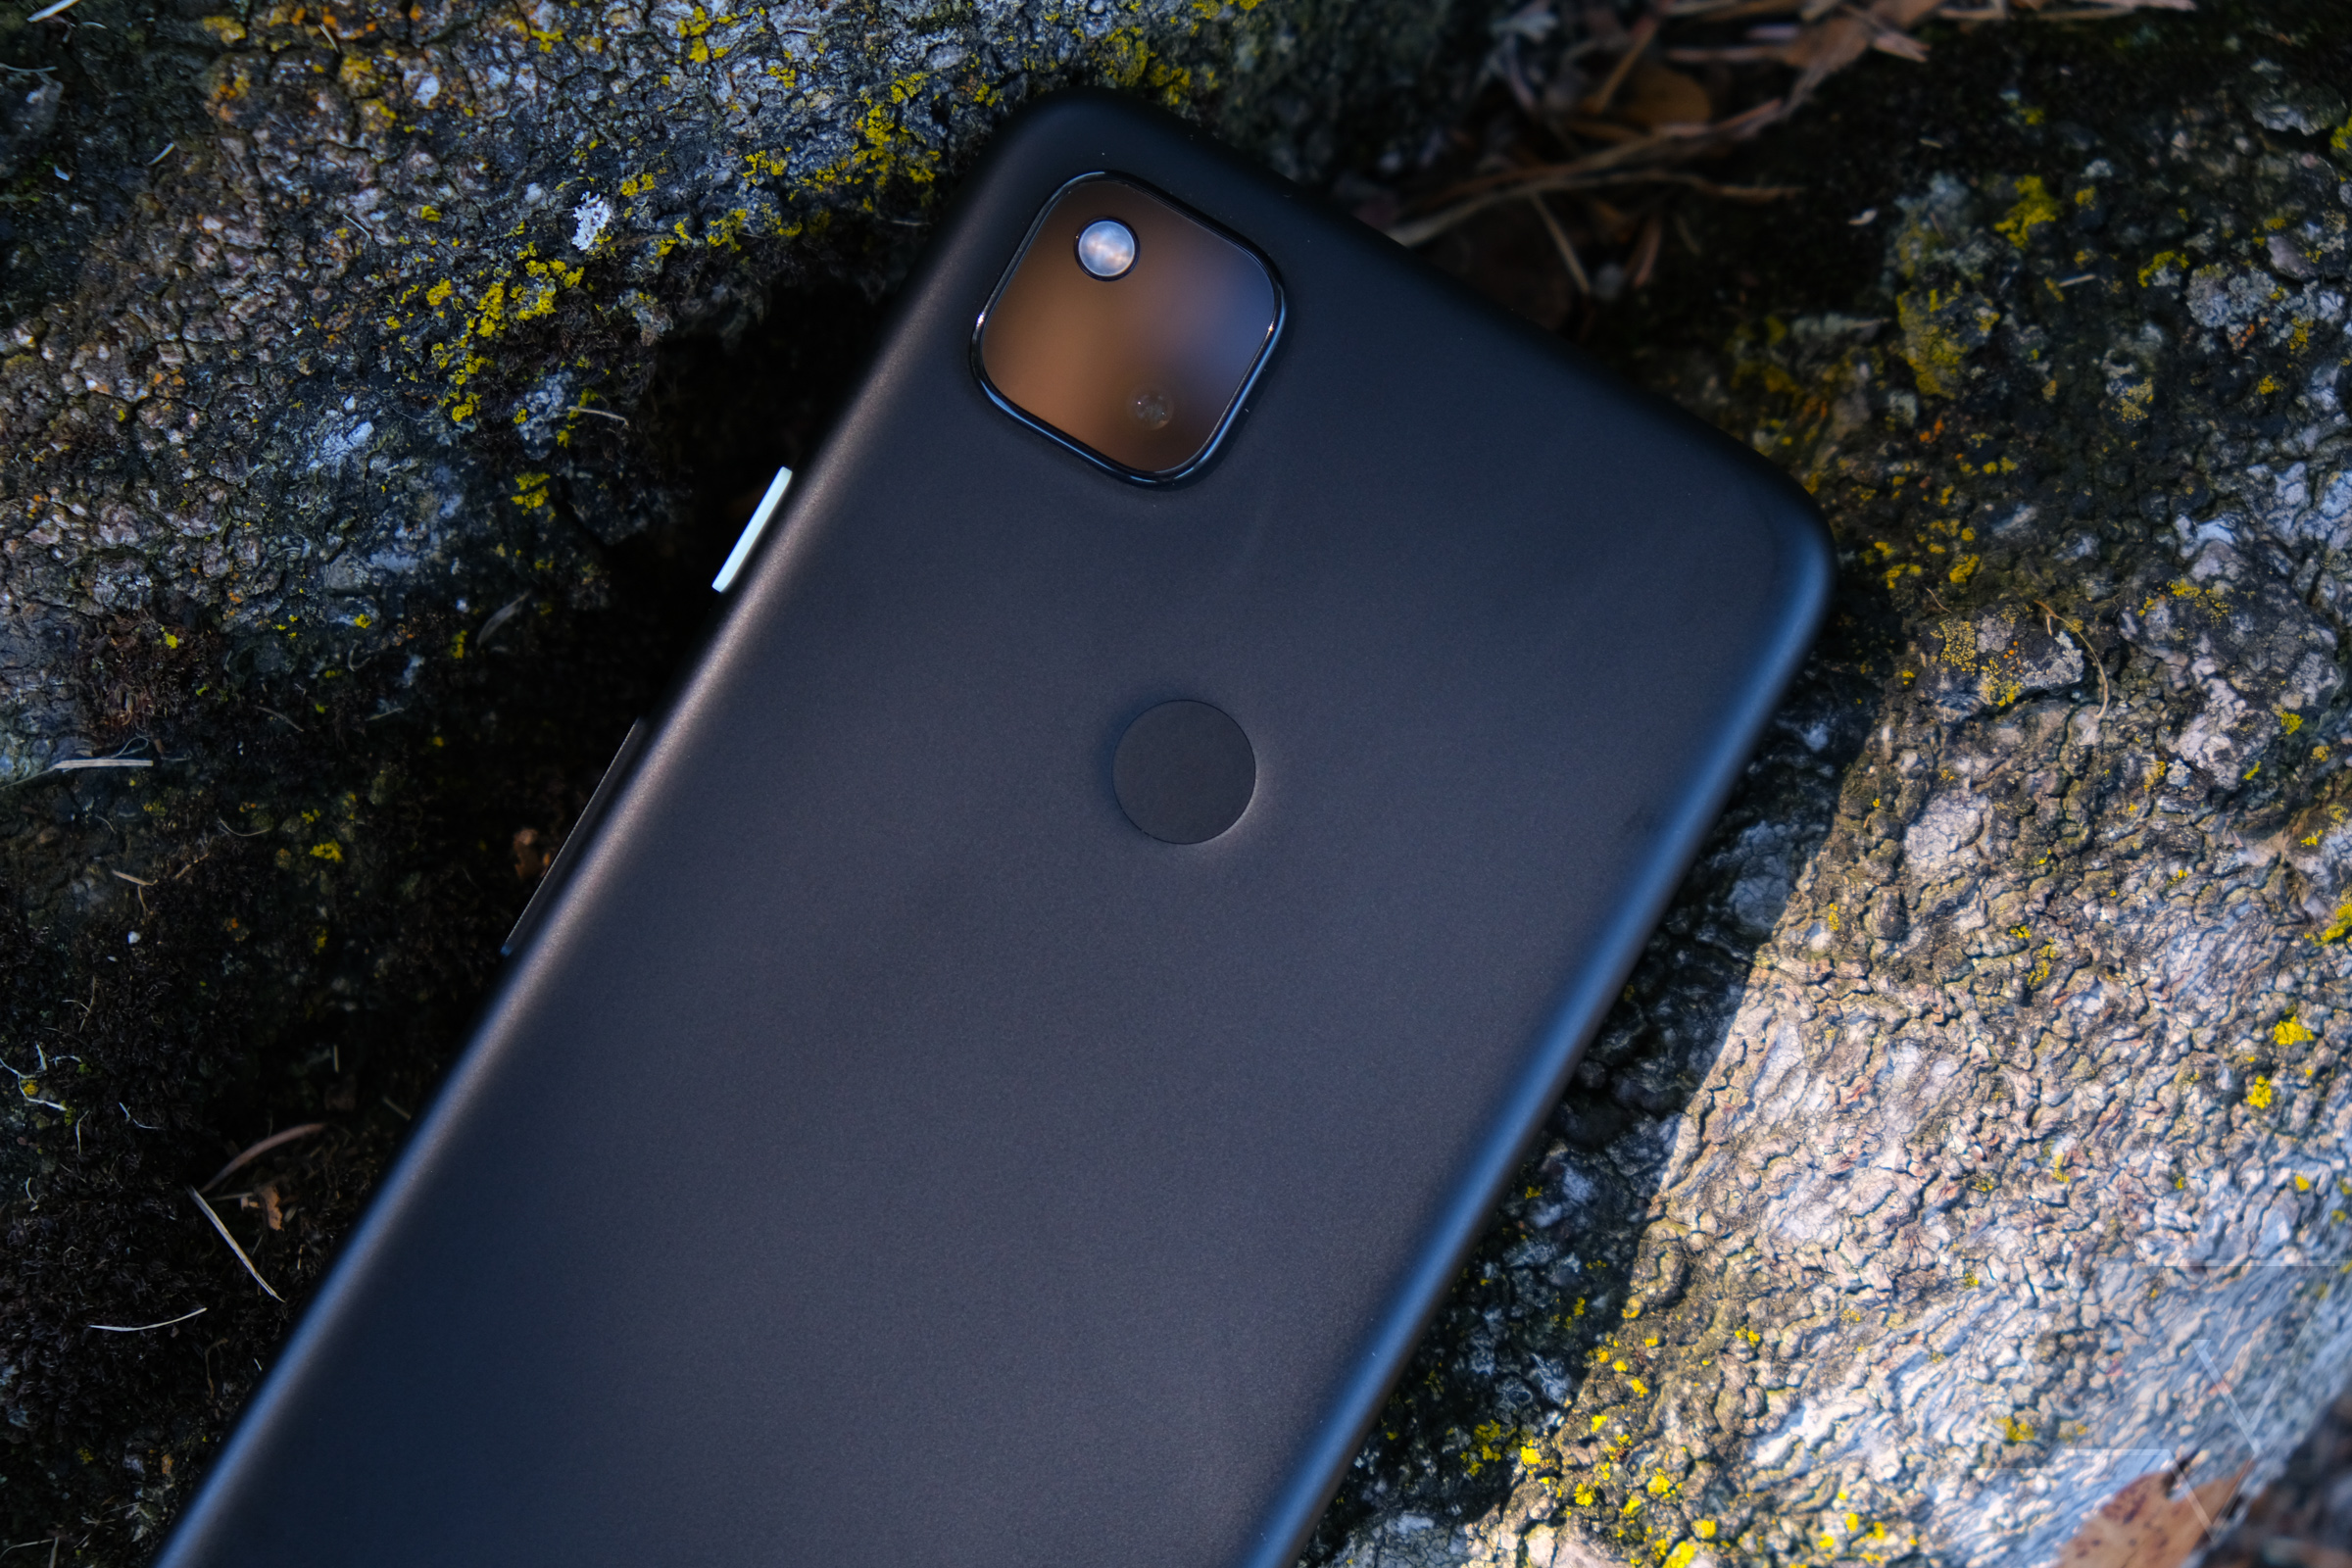 Should you buy a Pixel 4a, or wait for the Pixel 5?